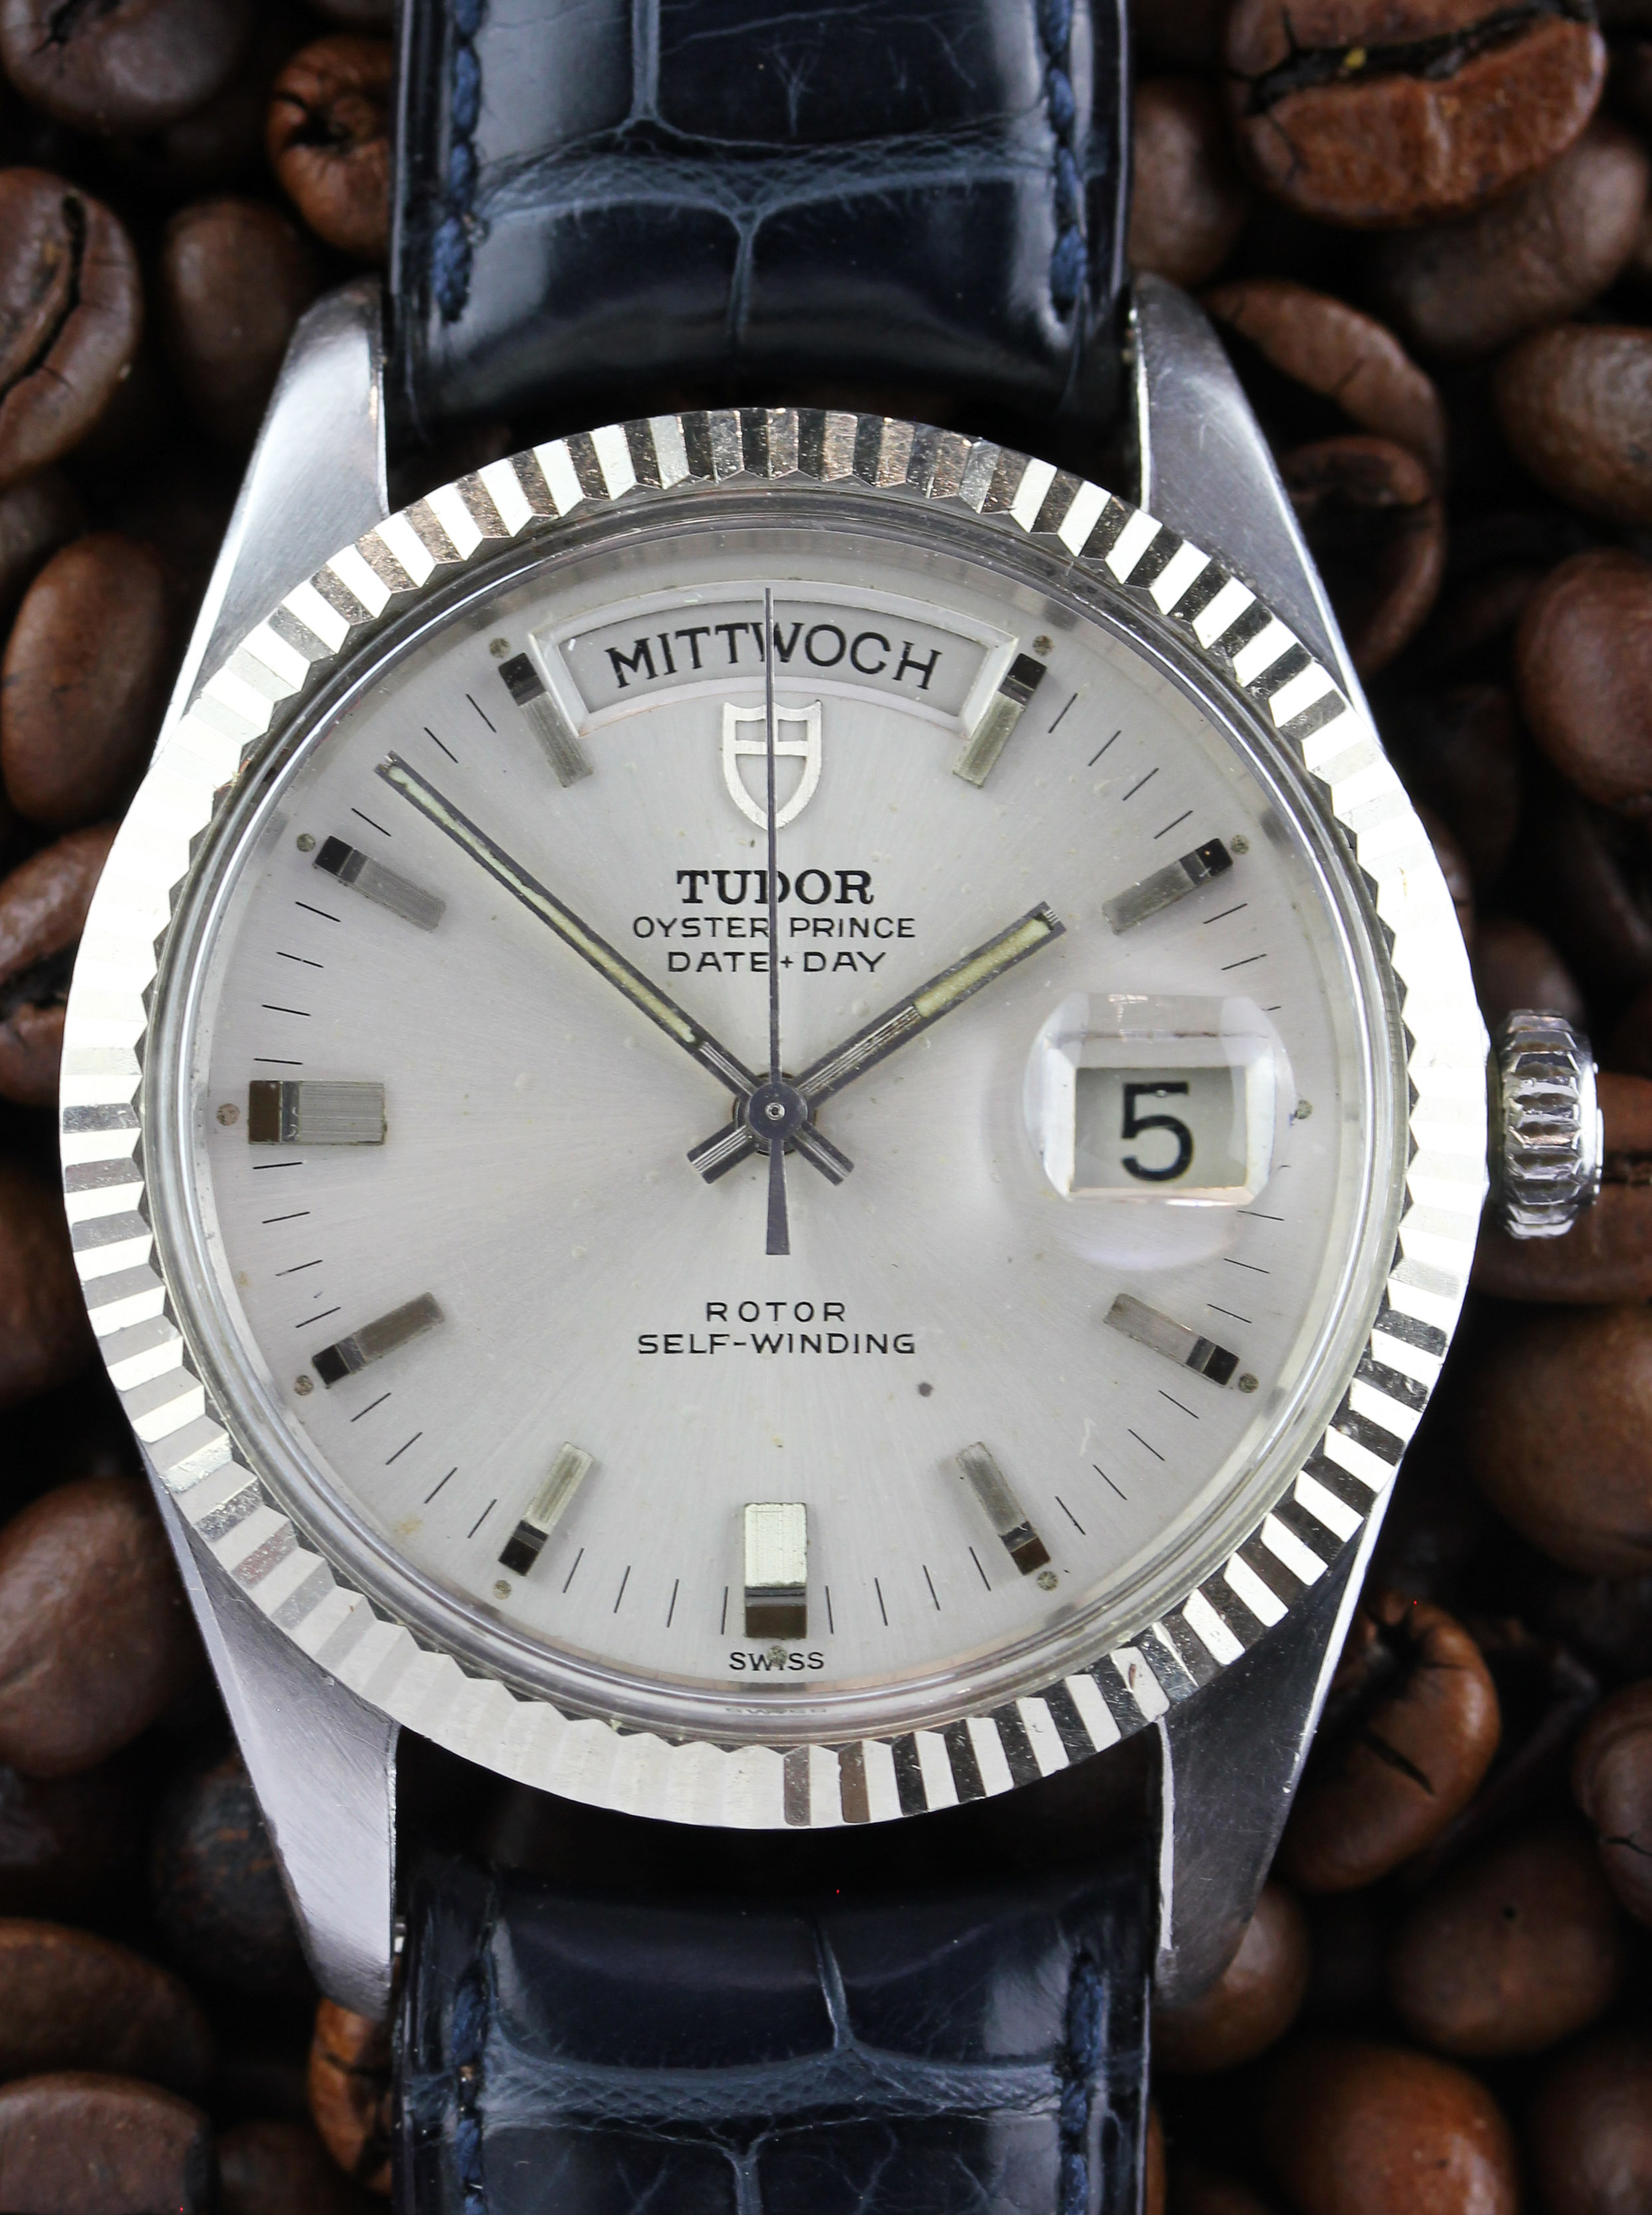 TUDOR Oyster Prince Date + Day, ref. 7019